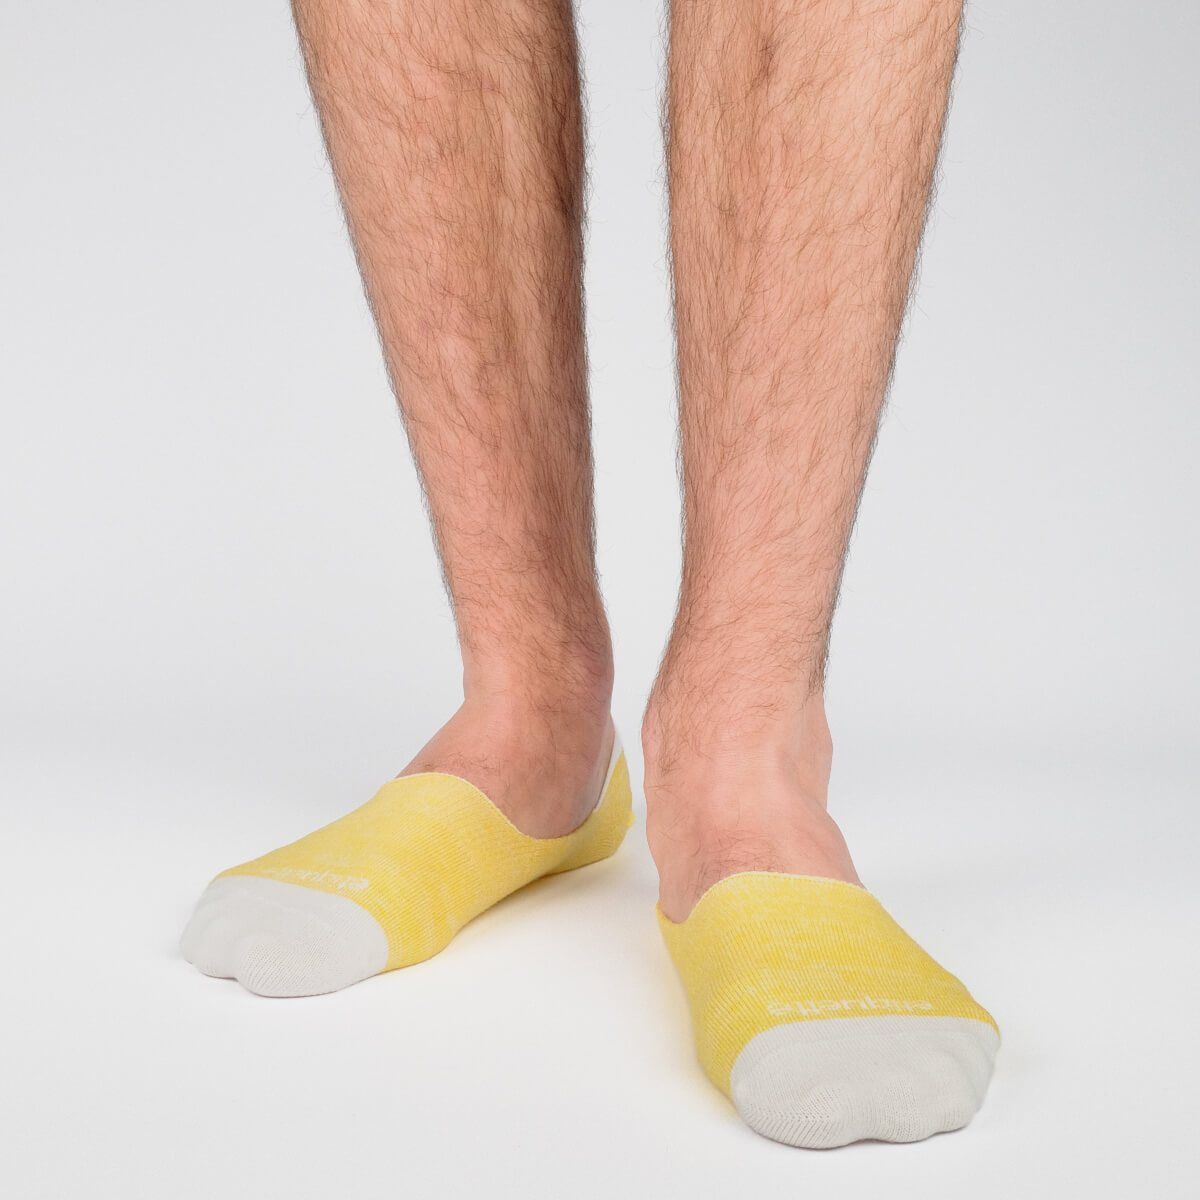 No Show Roppongi - Yellow - Mens Socks | Etiquette Clothiers Global Official